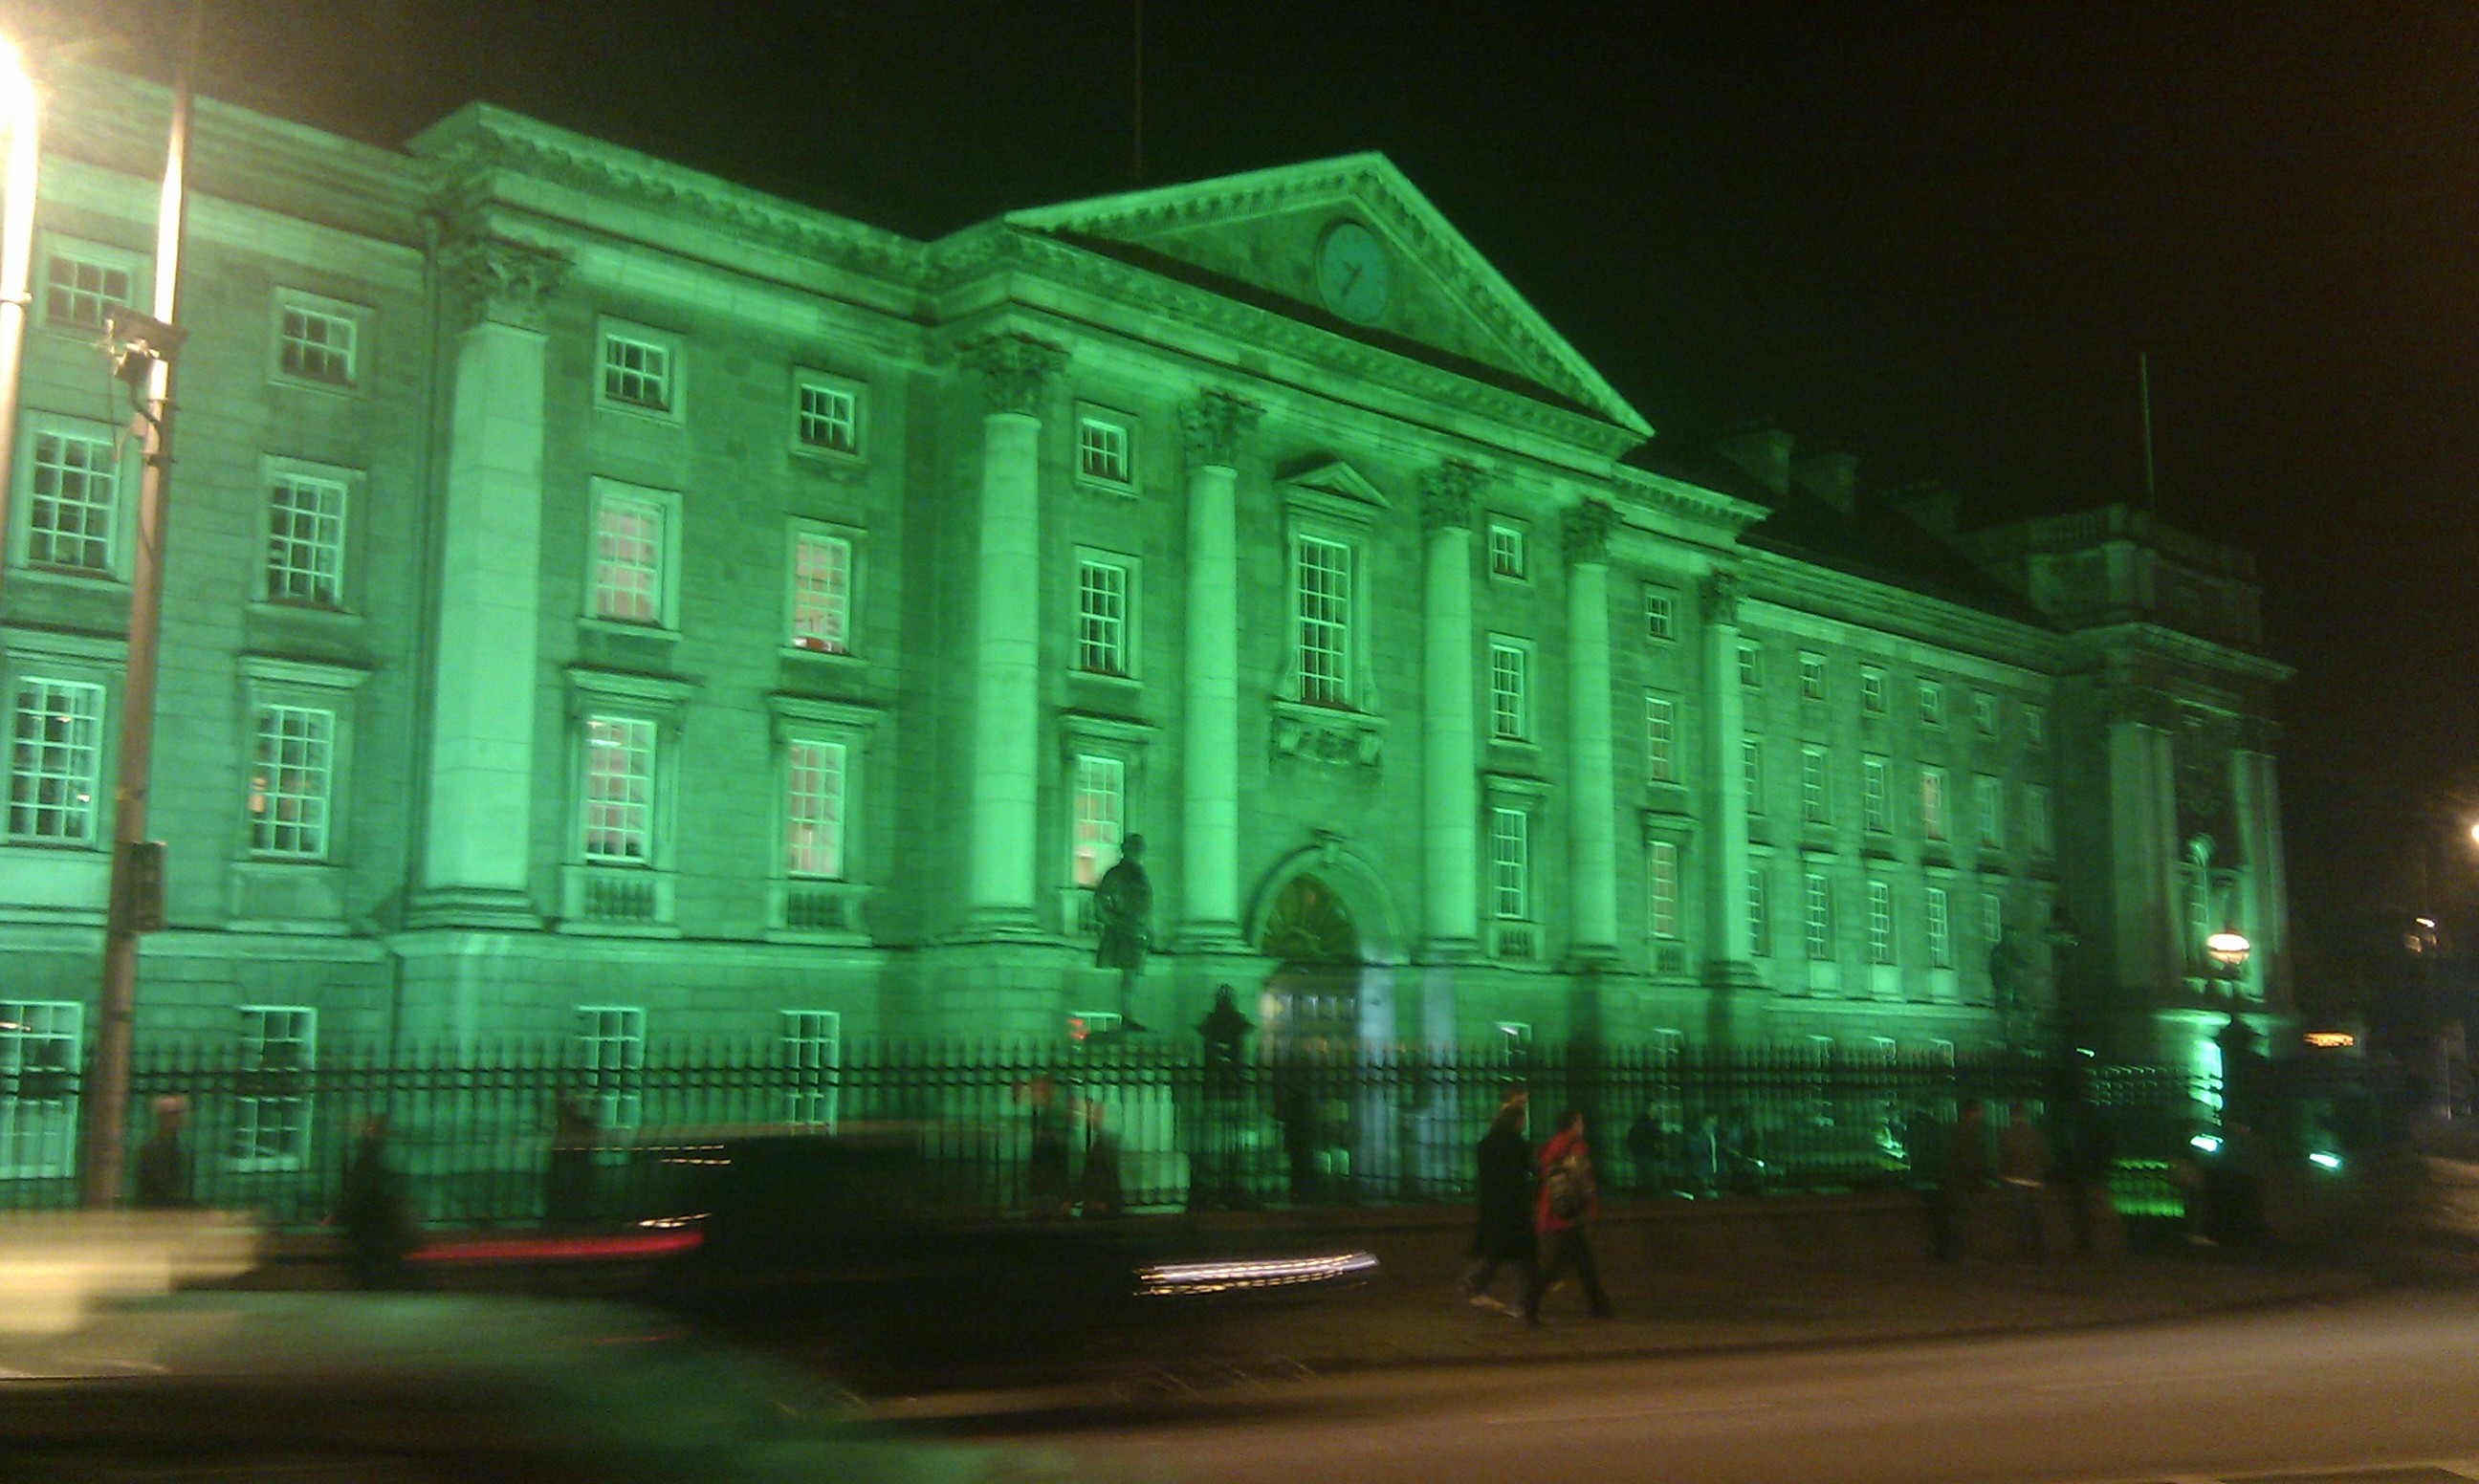 Dublin City's Trinity College at Night